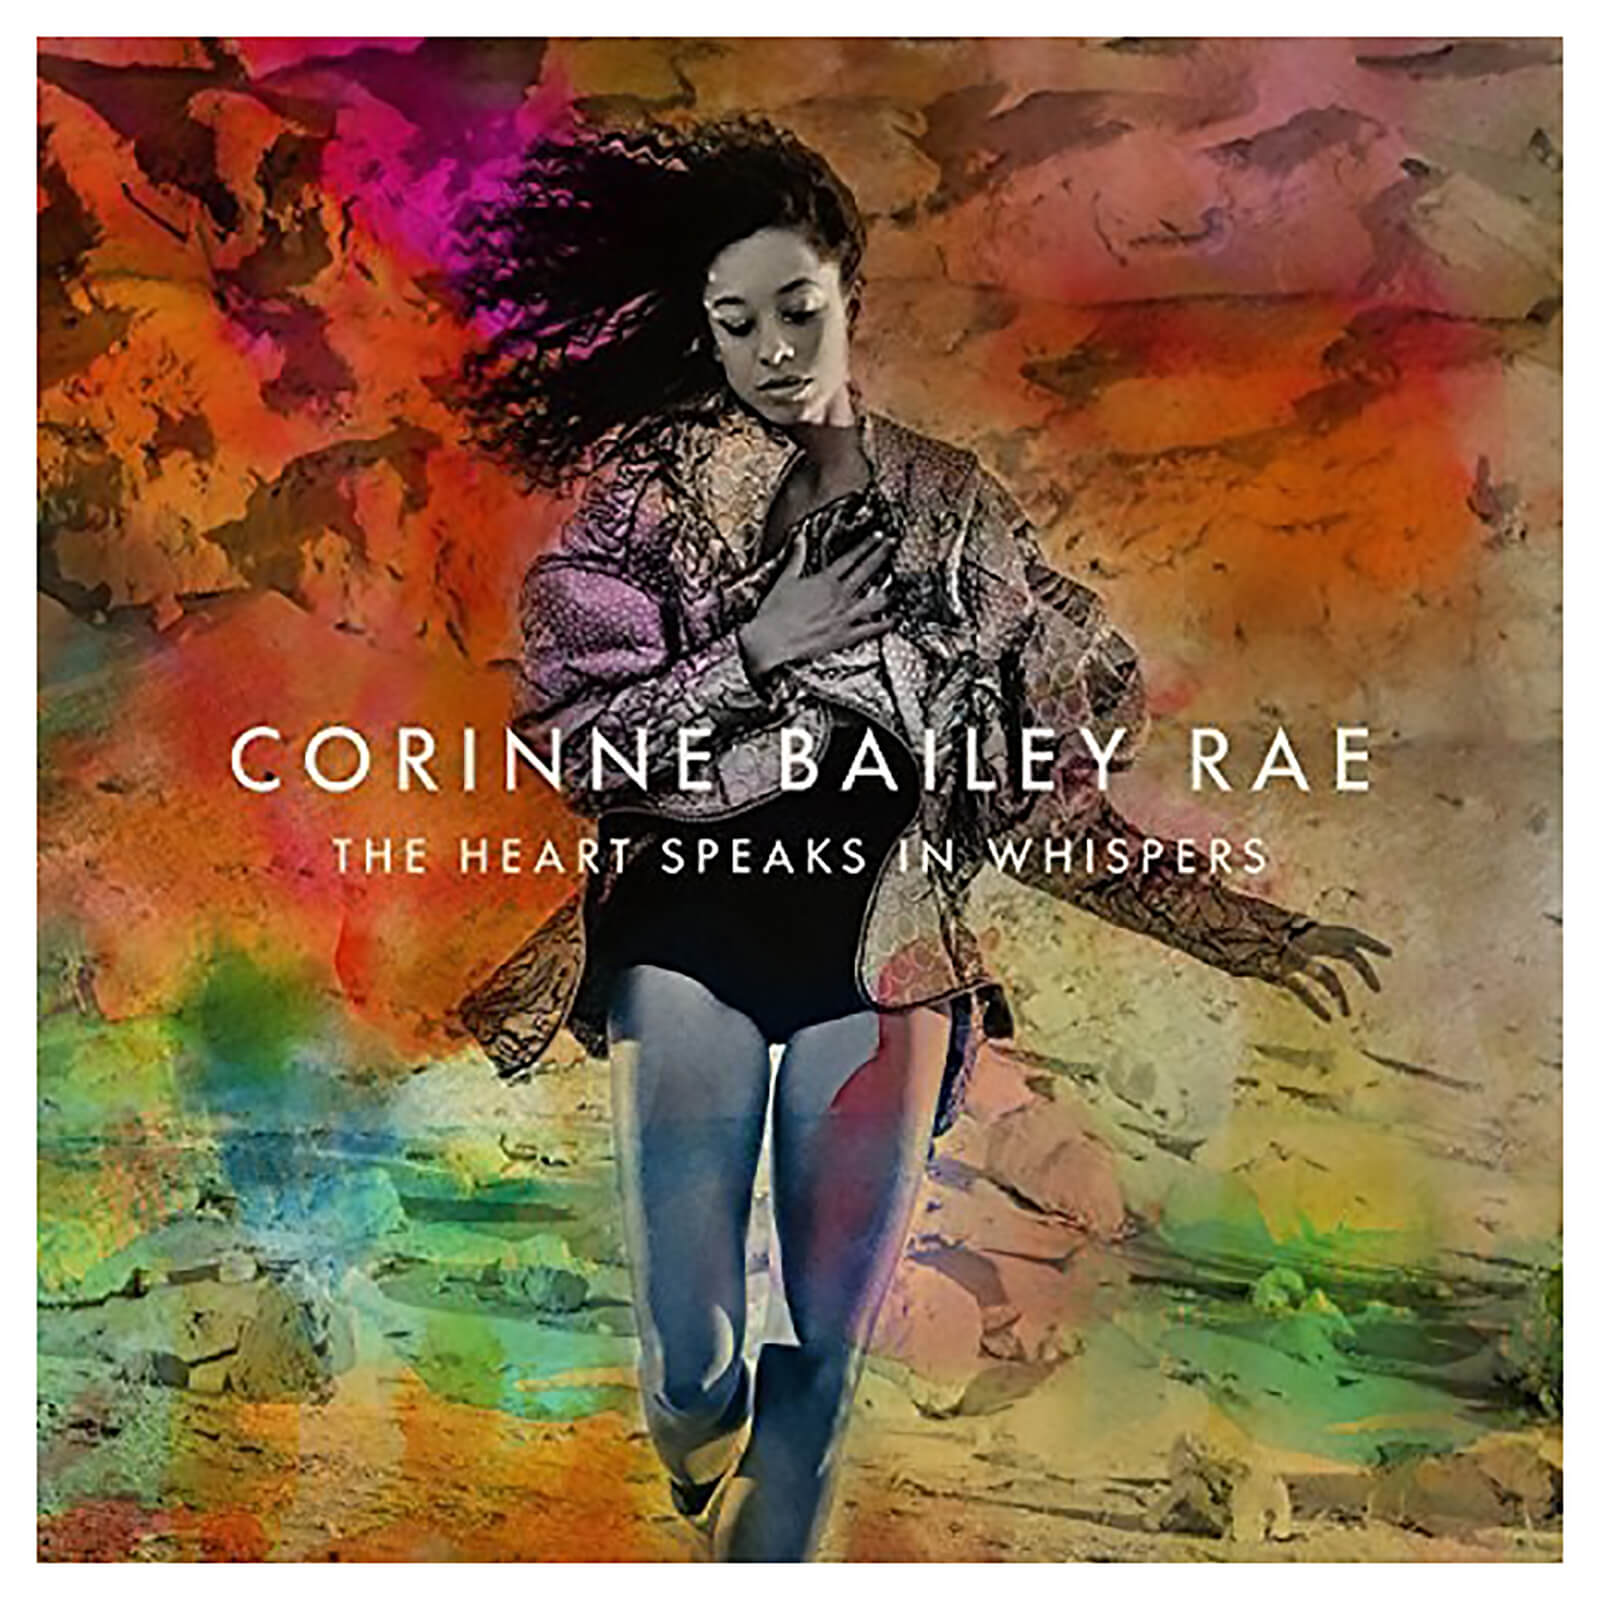 Corinne Bailey Rae - Heart Speaks In Whispers - Vinyl